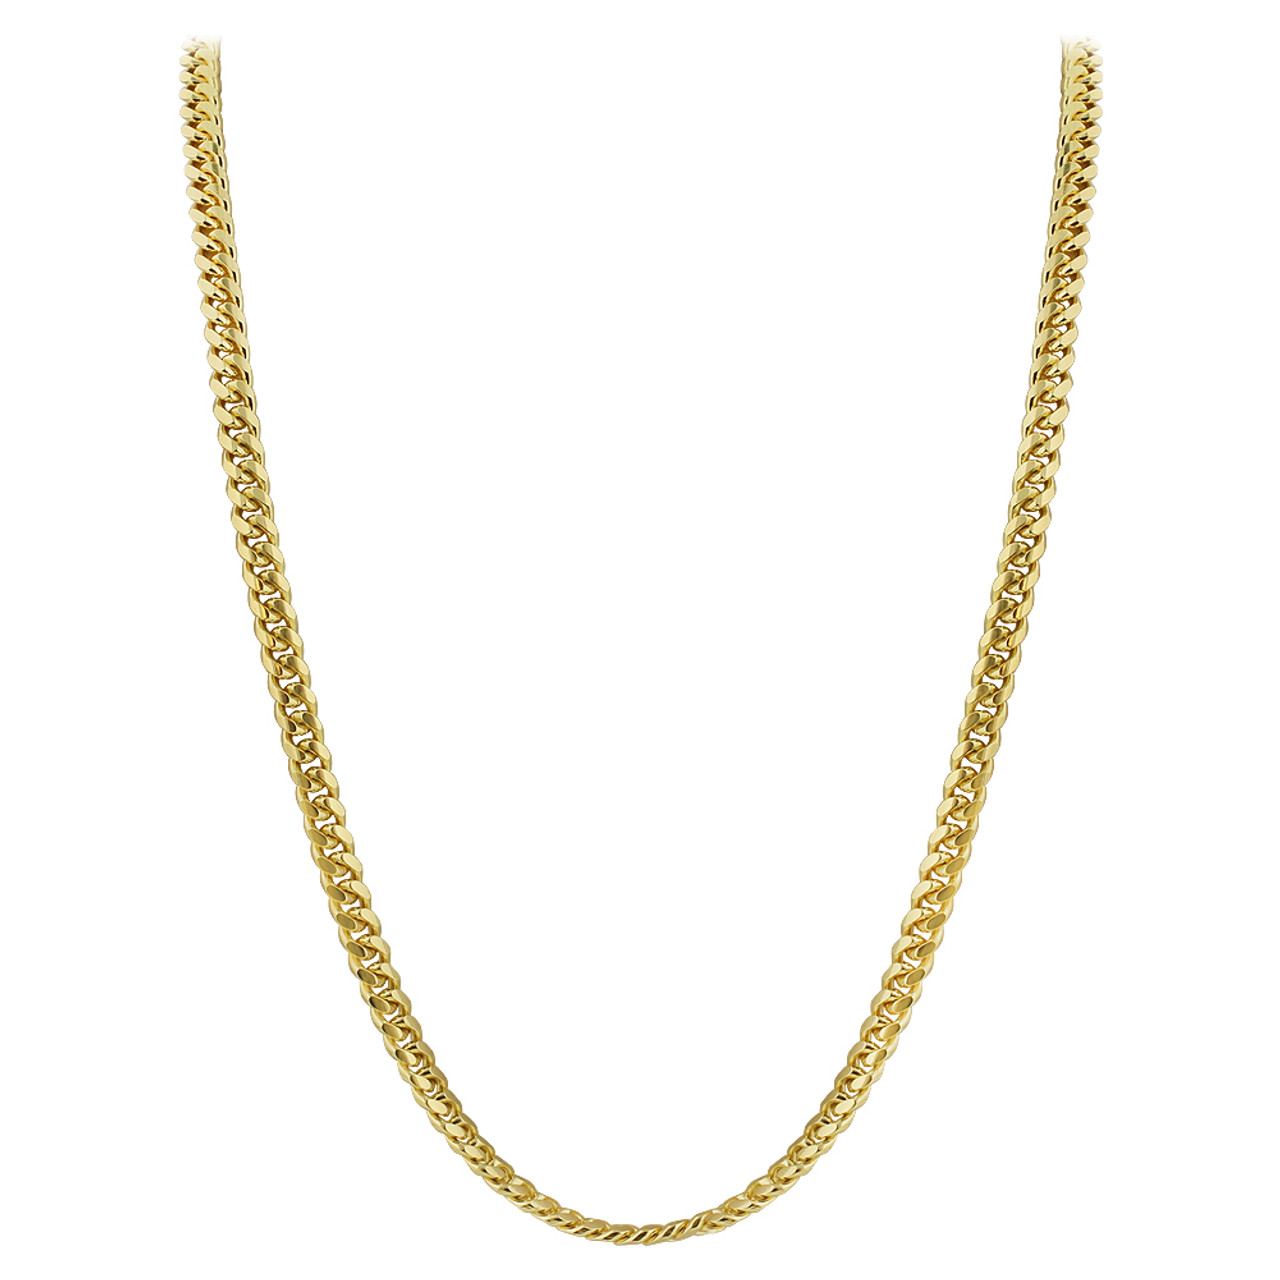 Gold Plated Italian 925 Sterling Silver Vermeil